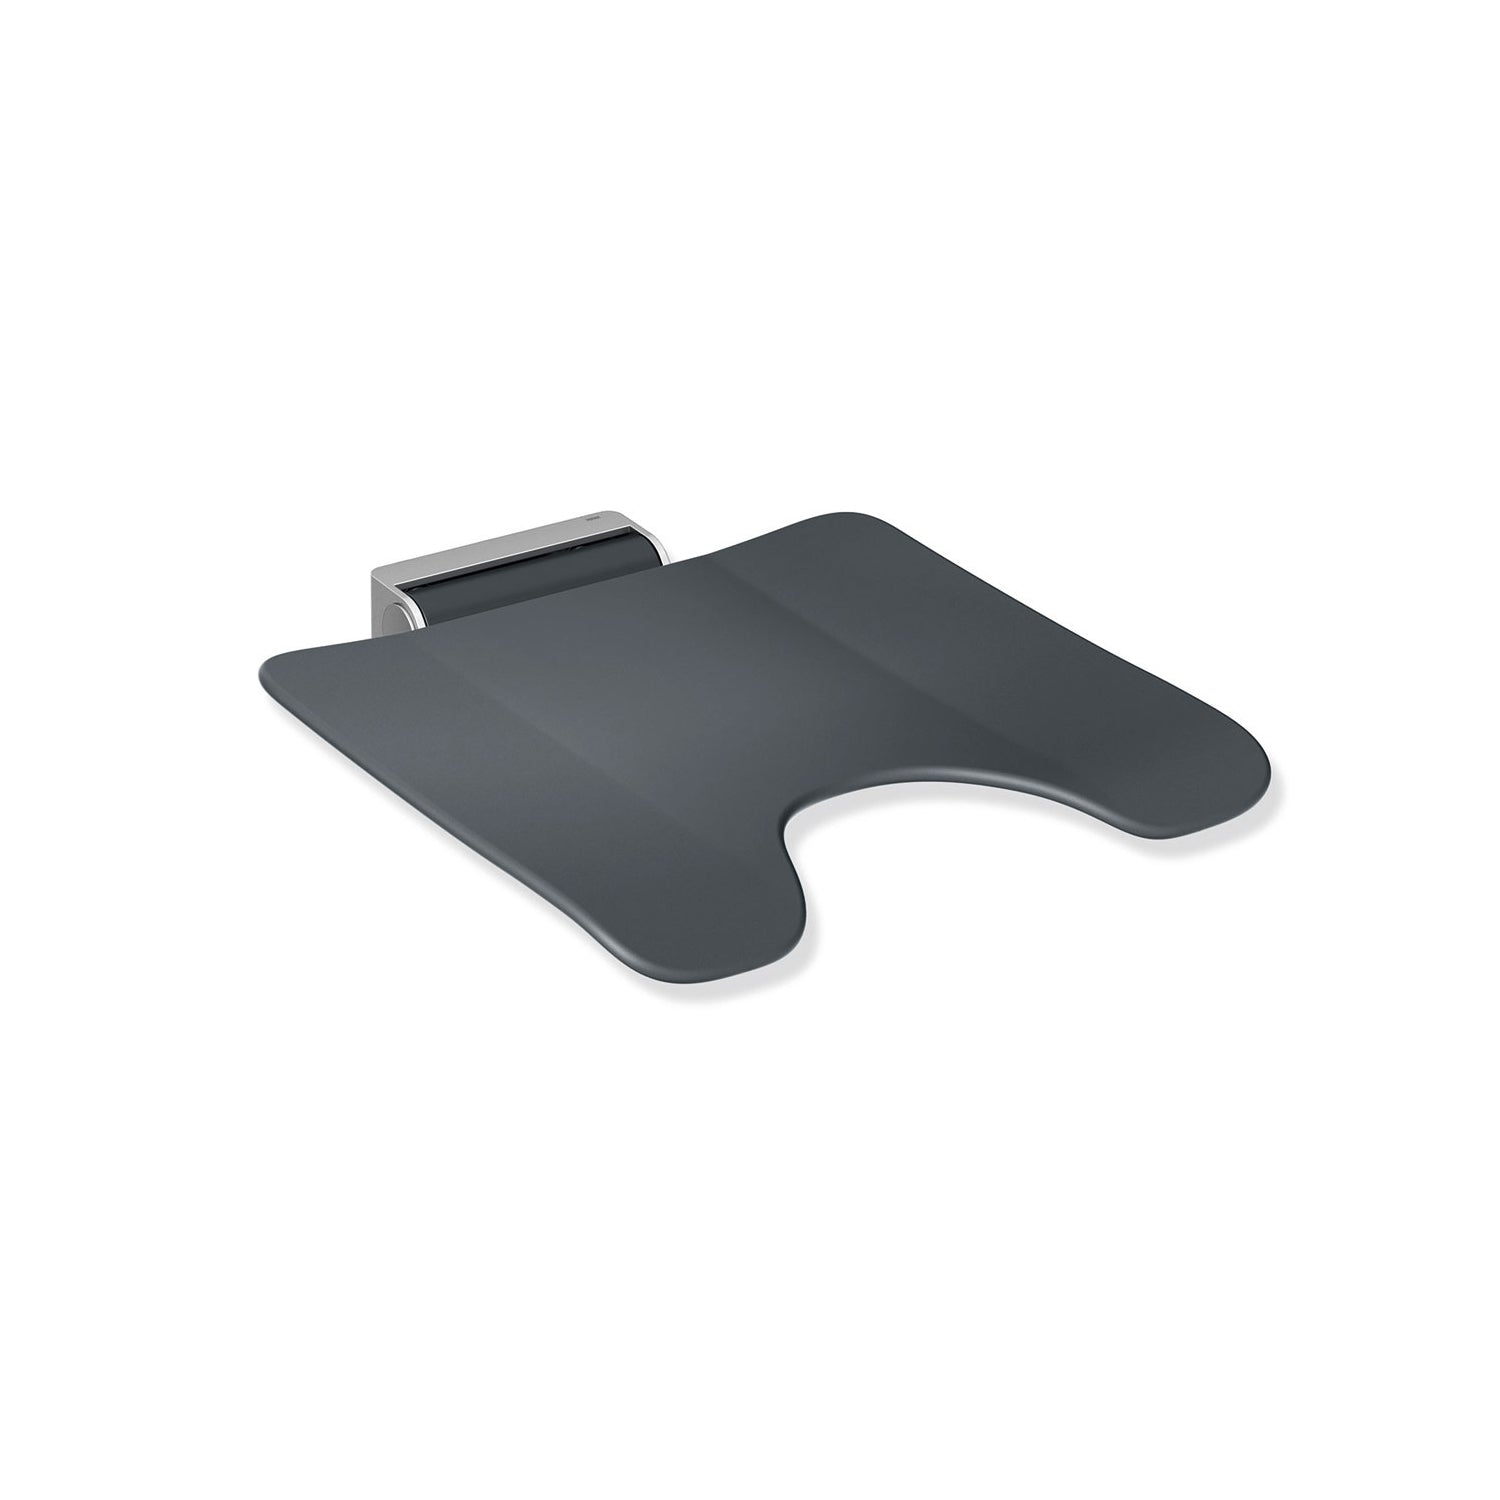 Freestyle Removable Shower Seat with a cut-out in an anthracite grey seat and satin steel bracket on a white background